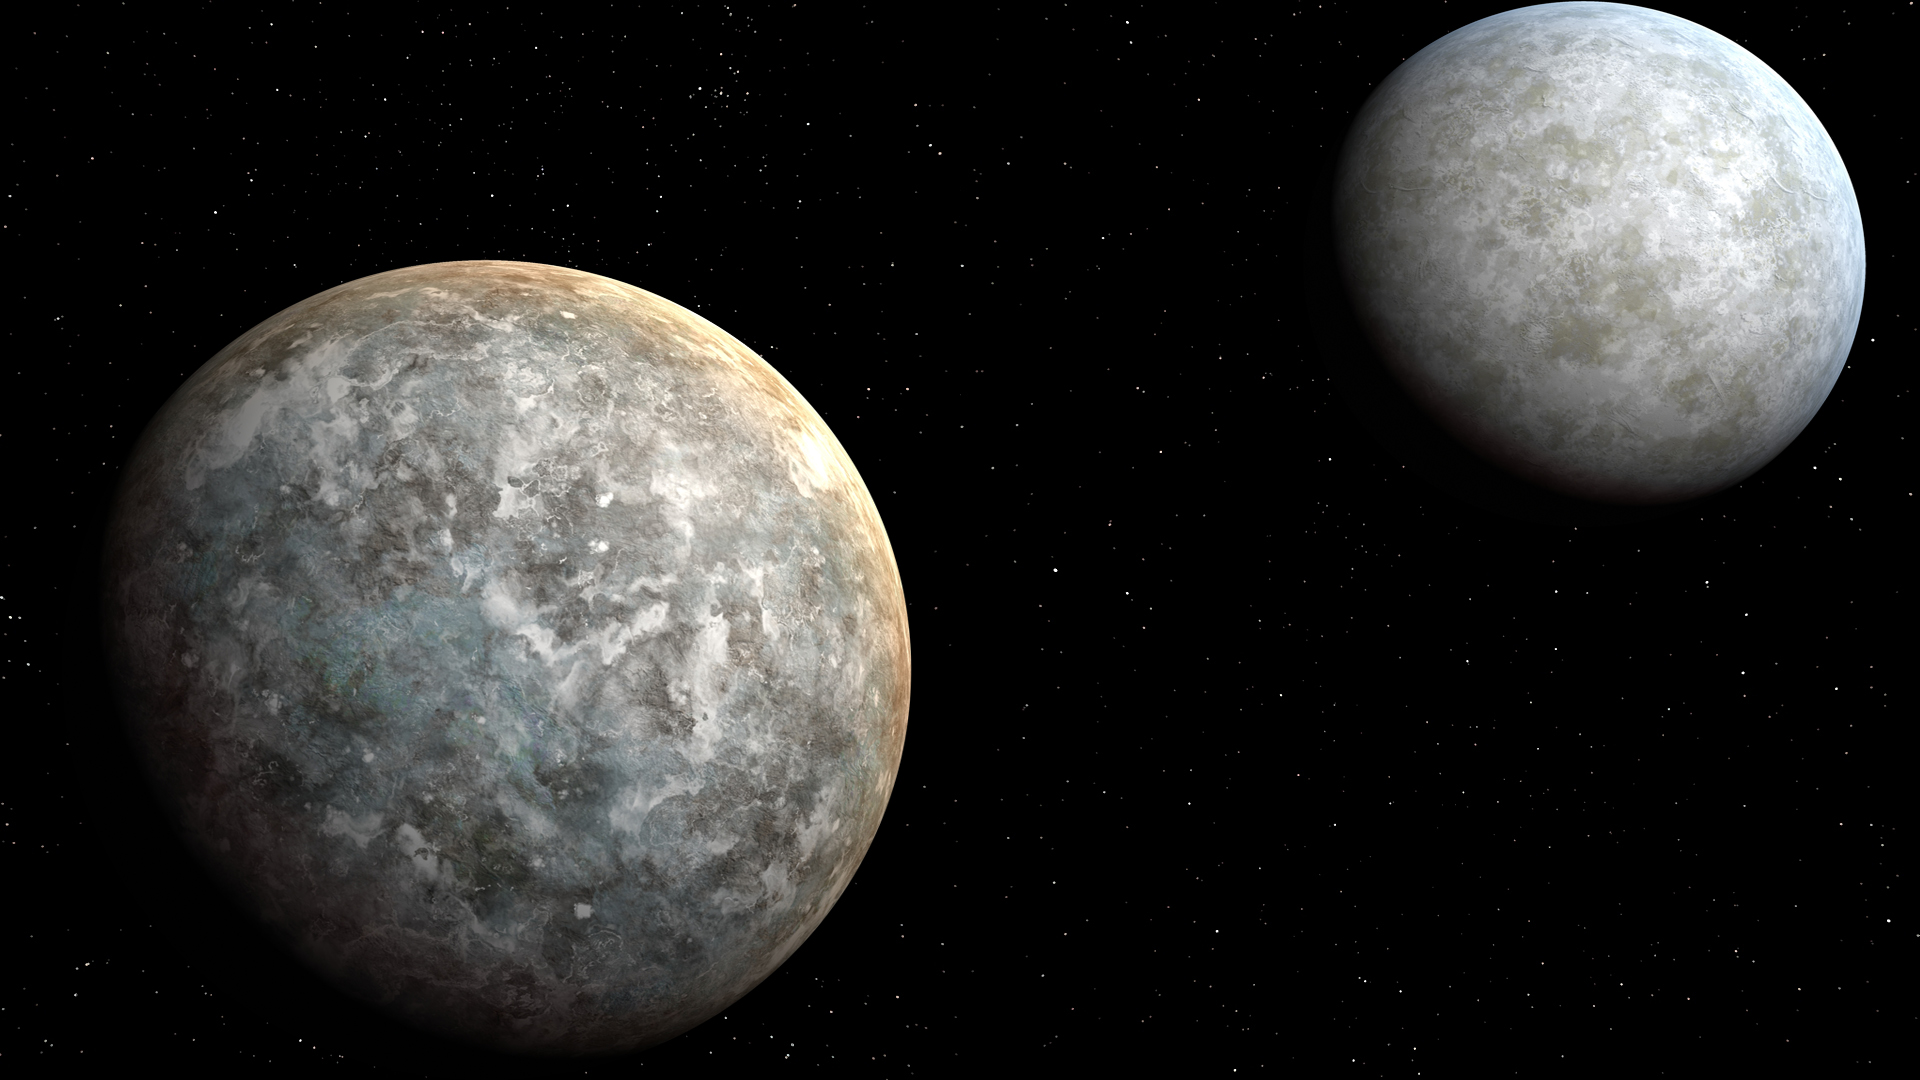 planets and moons stars - photo #18